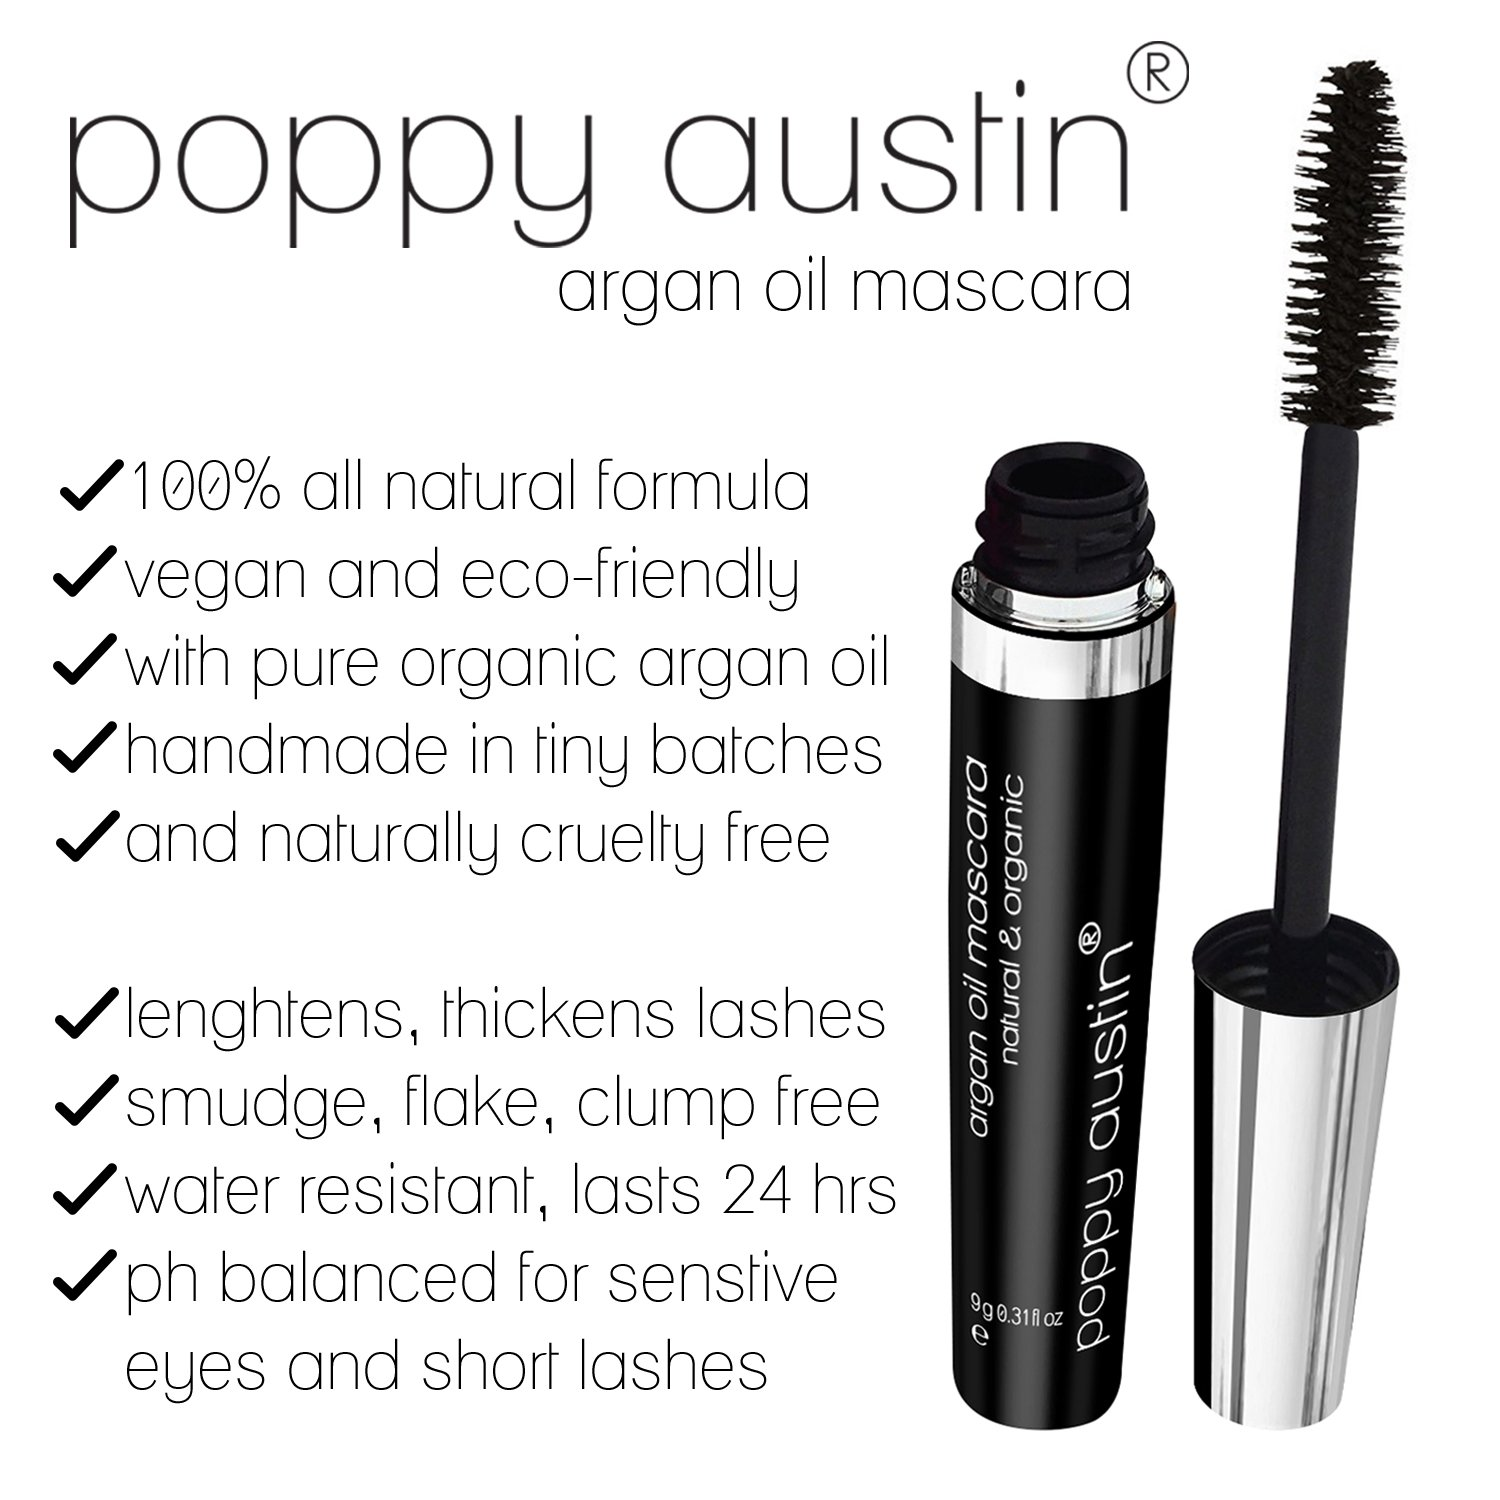 5a5b96d6afe FINEST Vegan & Organic Lengthening Mascara Black With Argan Oil - Cruelty- Free, Best Natural Volumising, Thickening, Smudge Proof, Hypoallergenic, ...